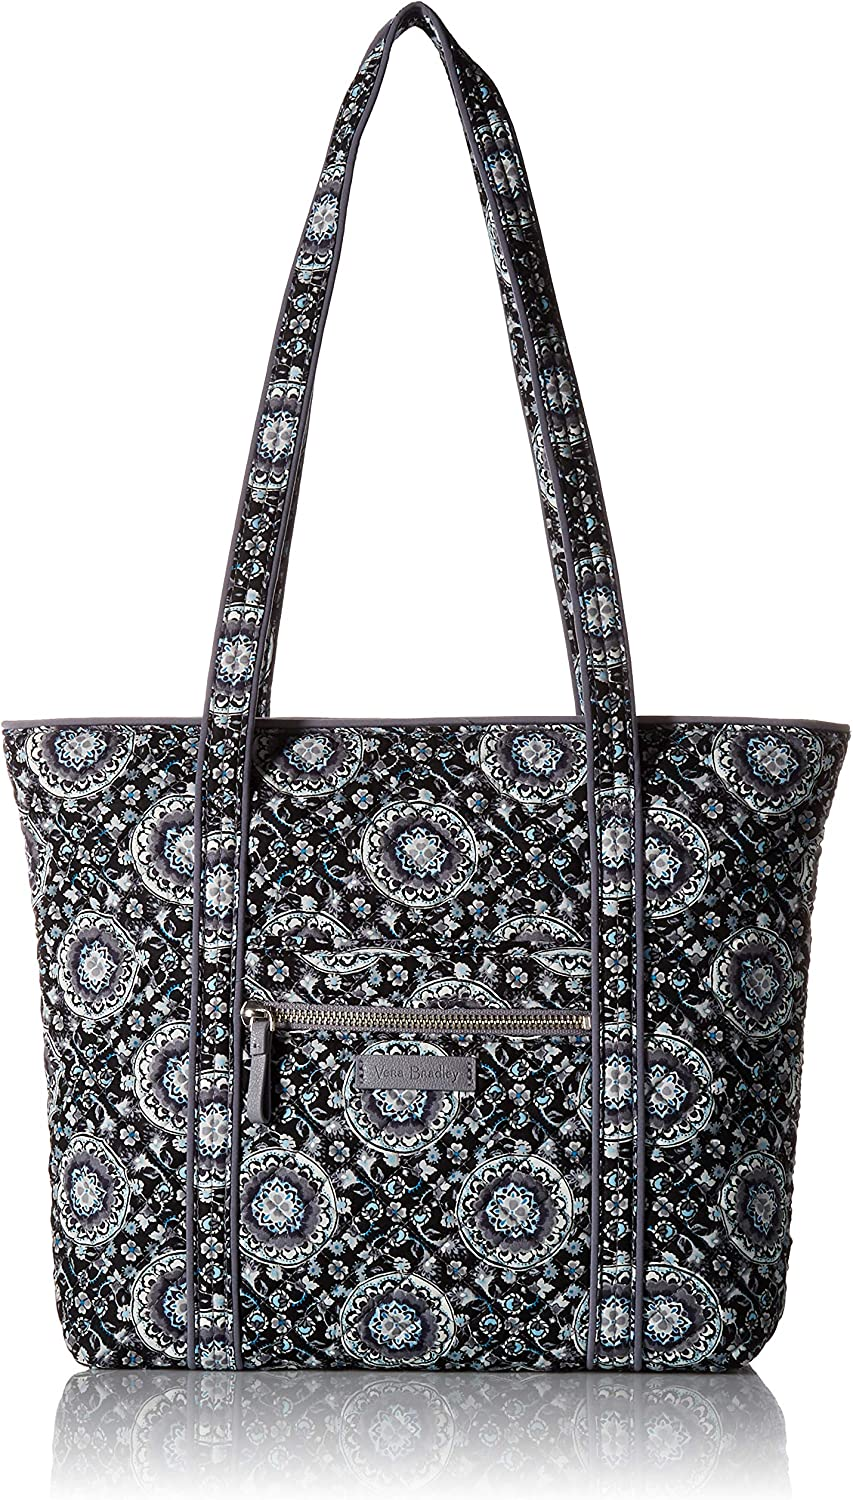 Vera Bradley Women's Signature Cotton Small Vera Tote Bag